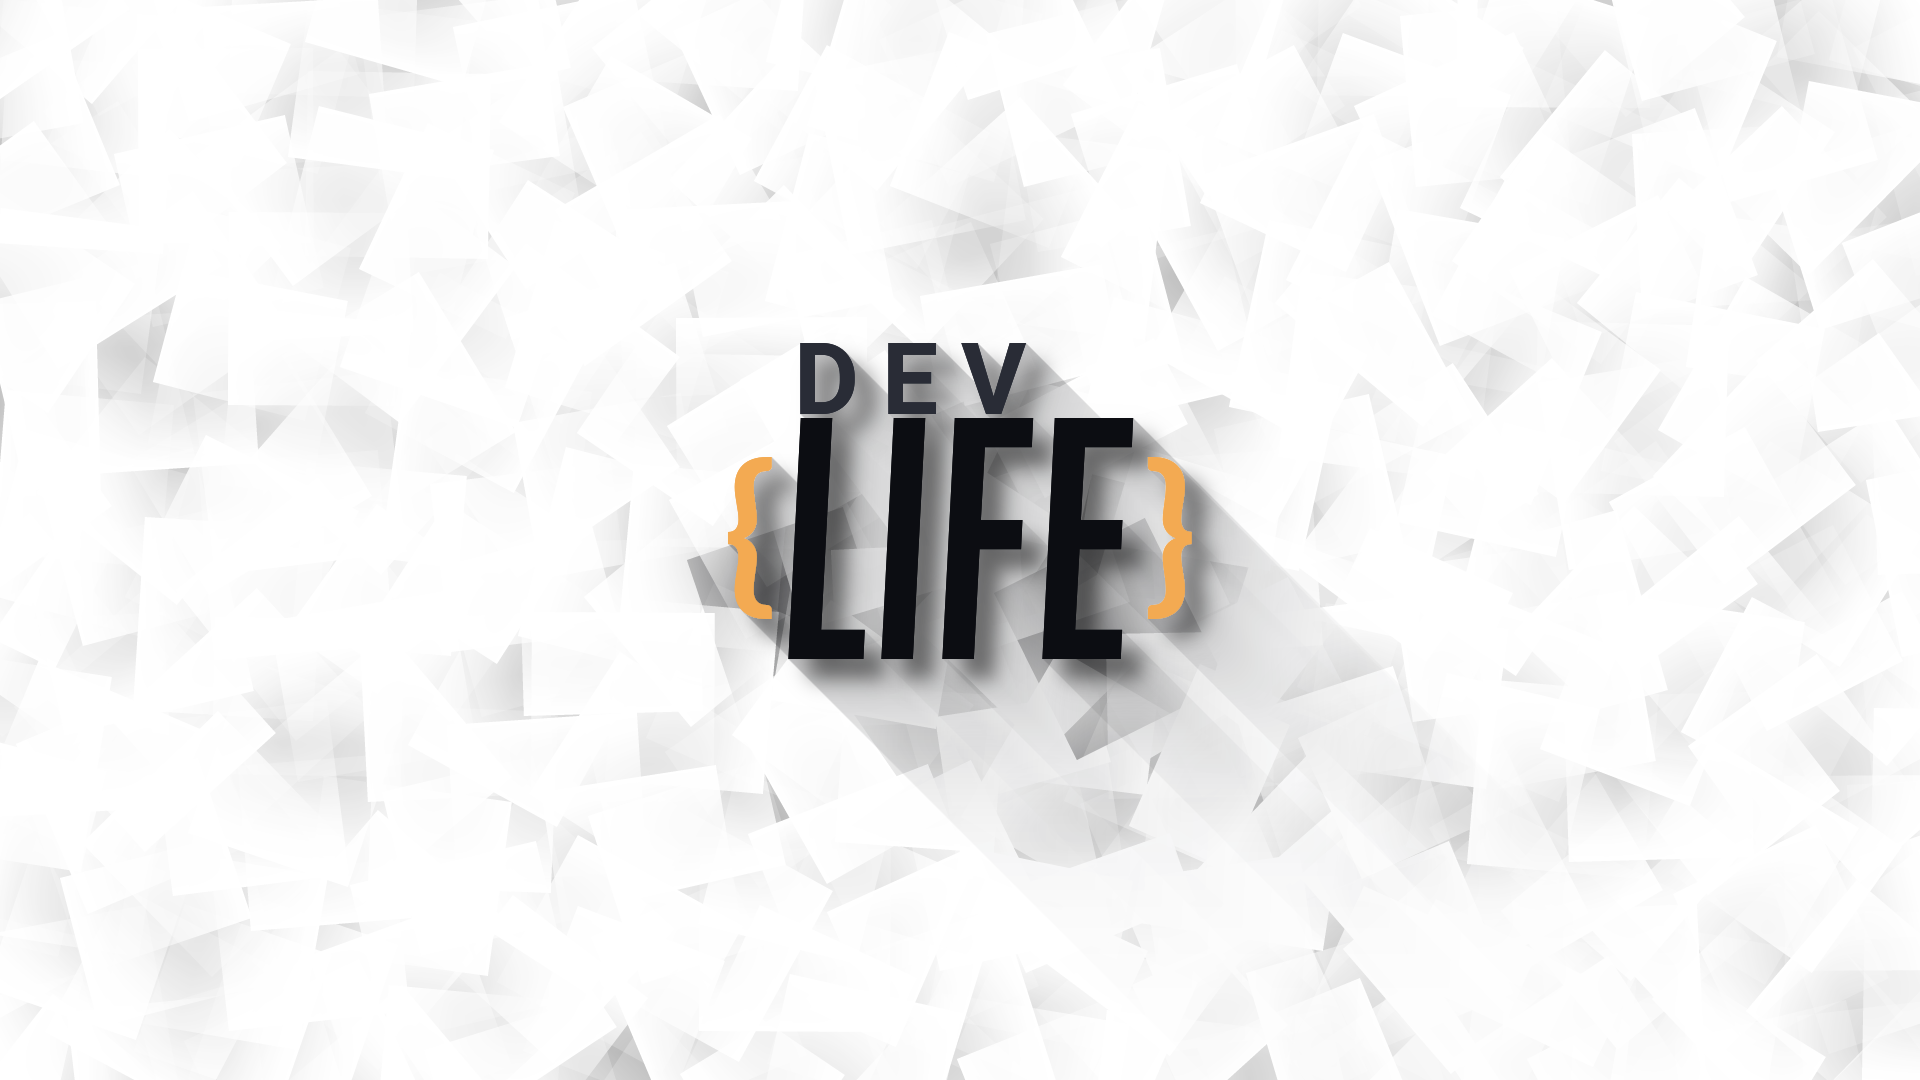 First Release [0 1 343] - DevLife by Mesote